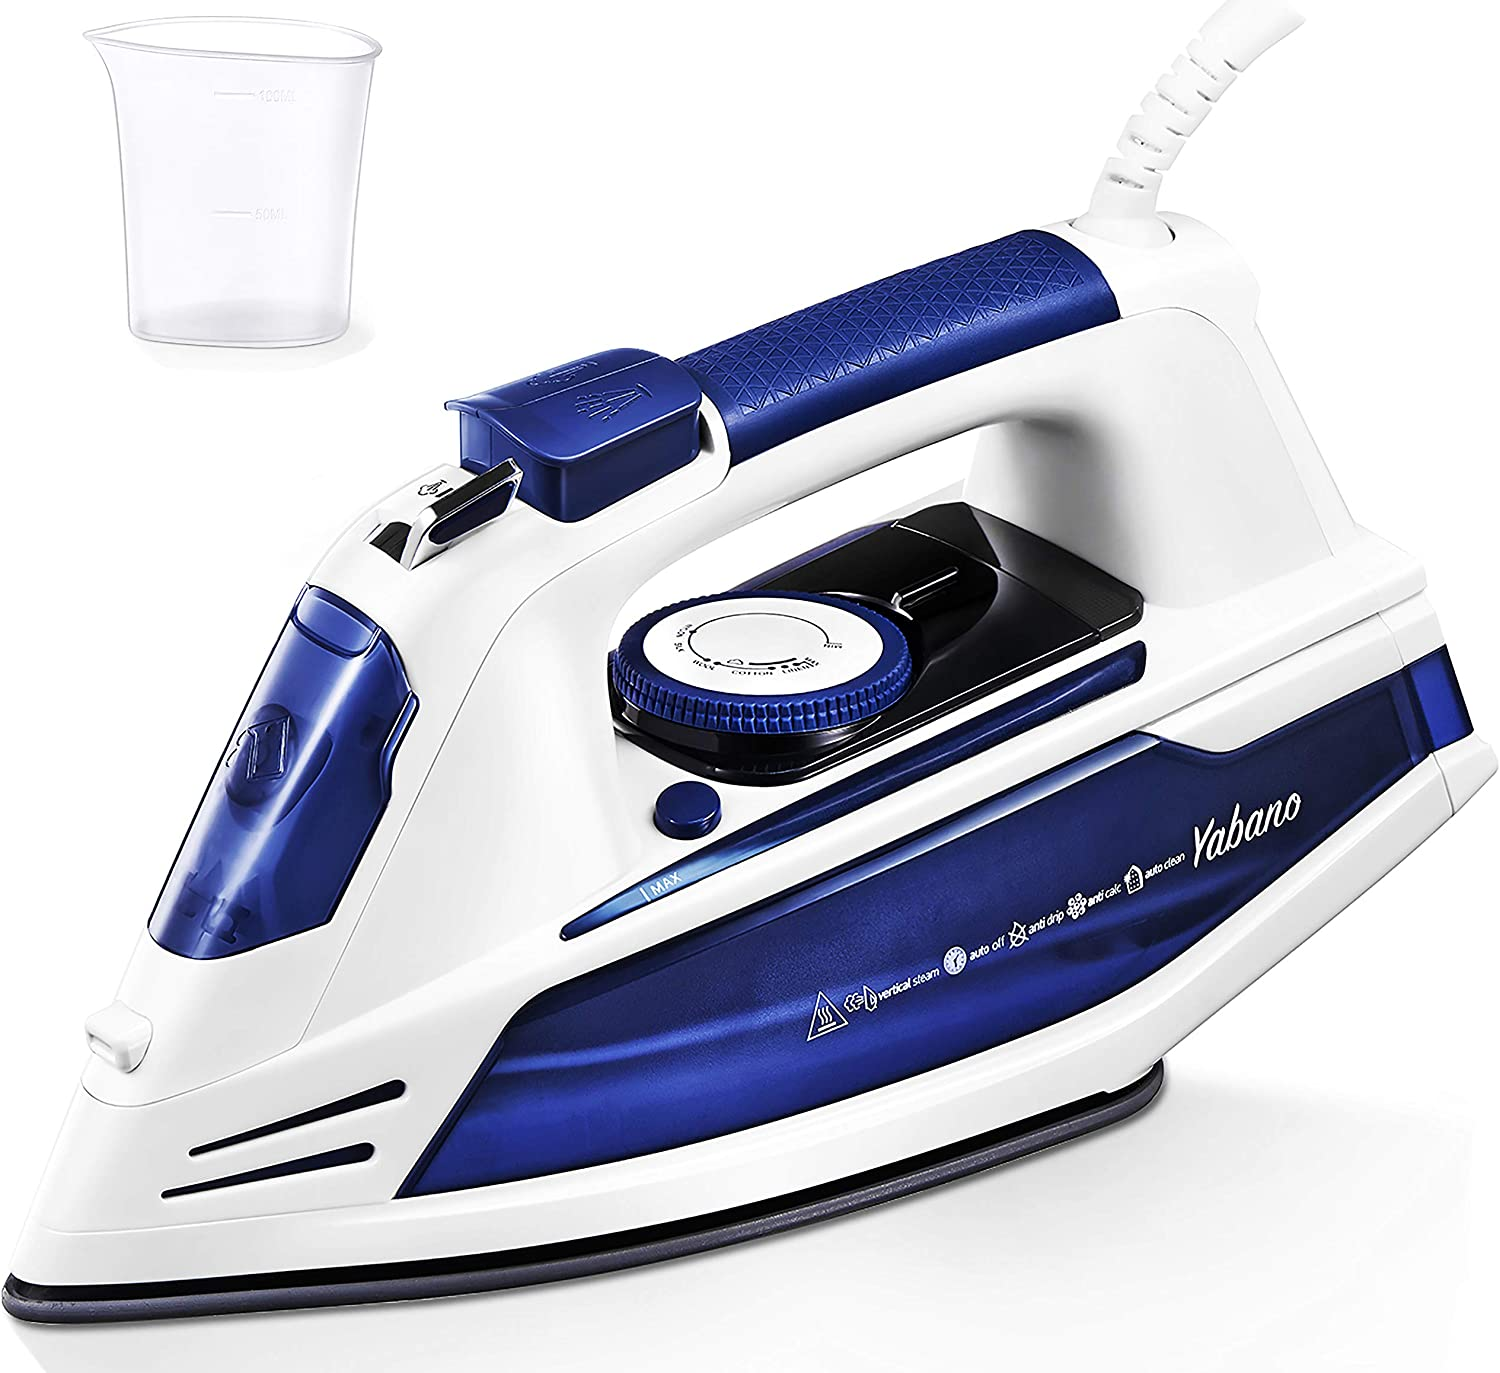 Yabano Steam Iron, Professional Iron for Clothes with Non-Stick Soleplate, Anti-Drip, 3 Way Auto-Off, Anti-Calc, Variable Temperature and Steam Control, 100+ Axial Aligned Steam Holes, Lightweight